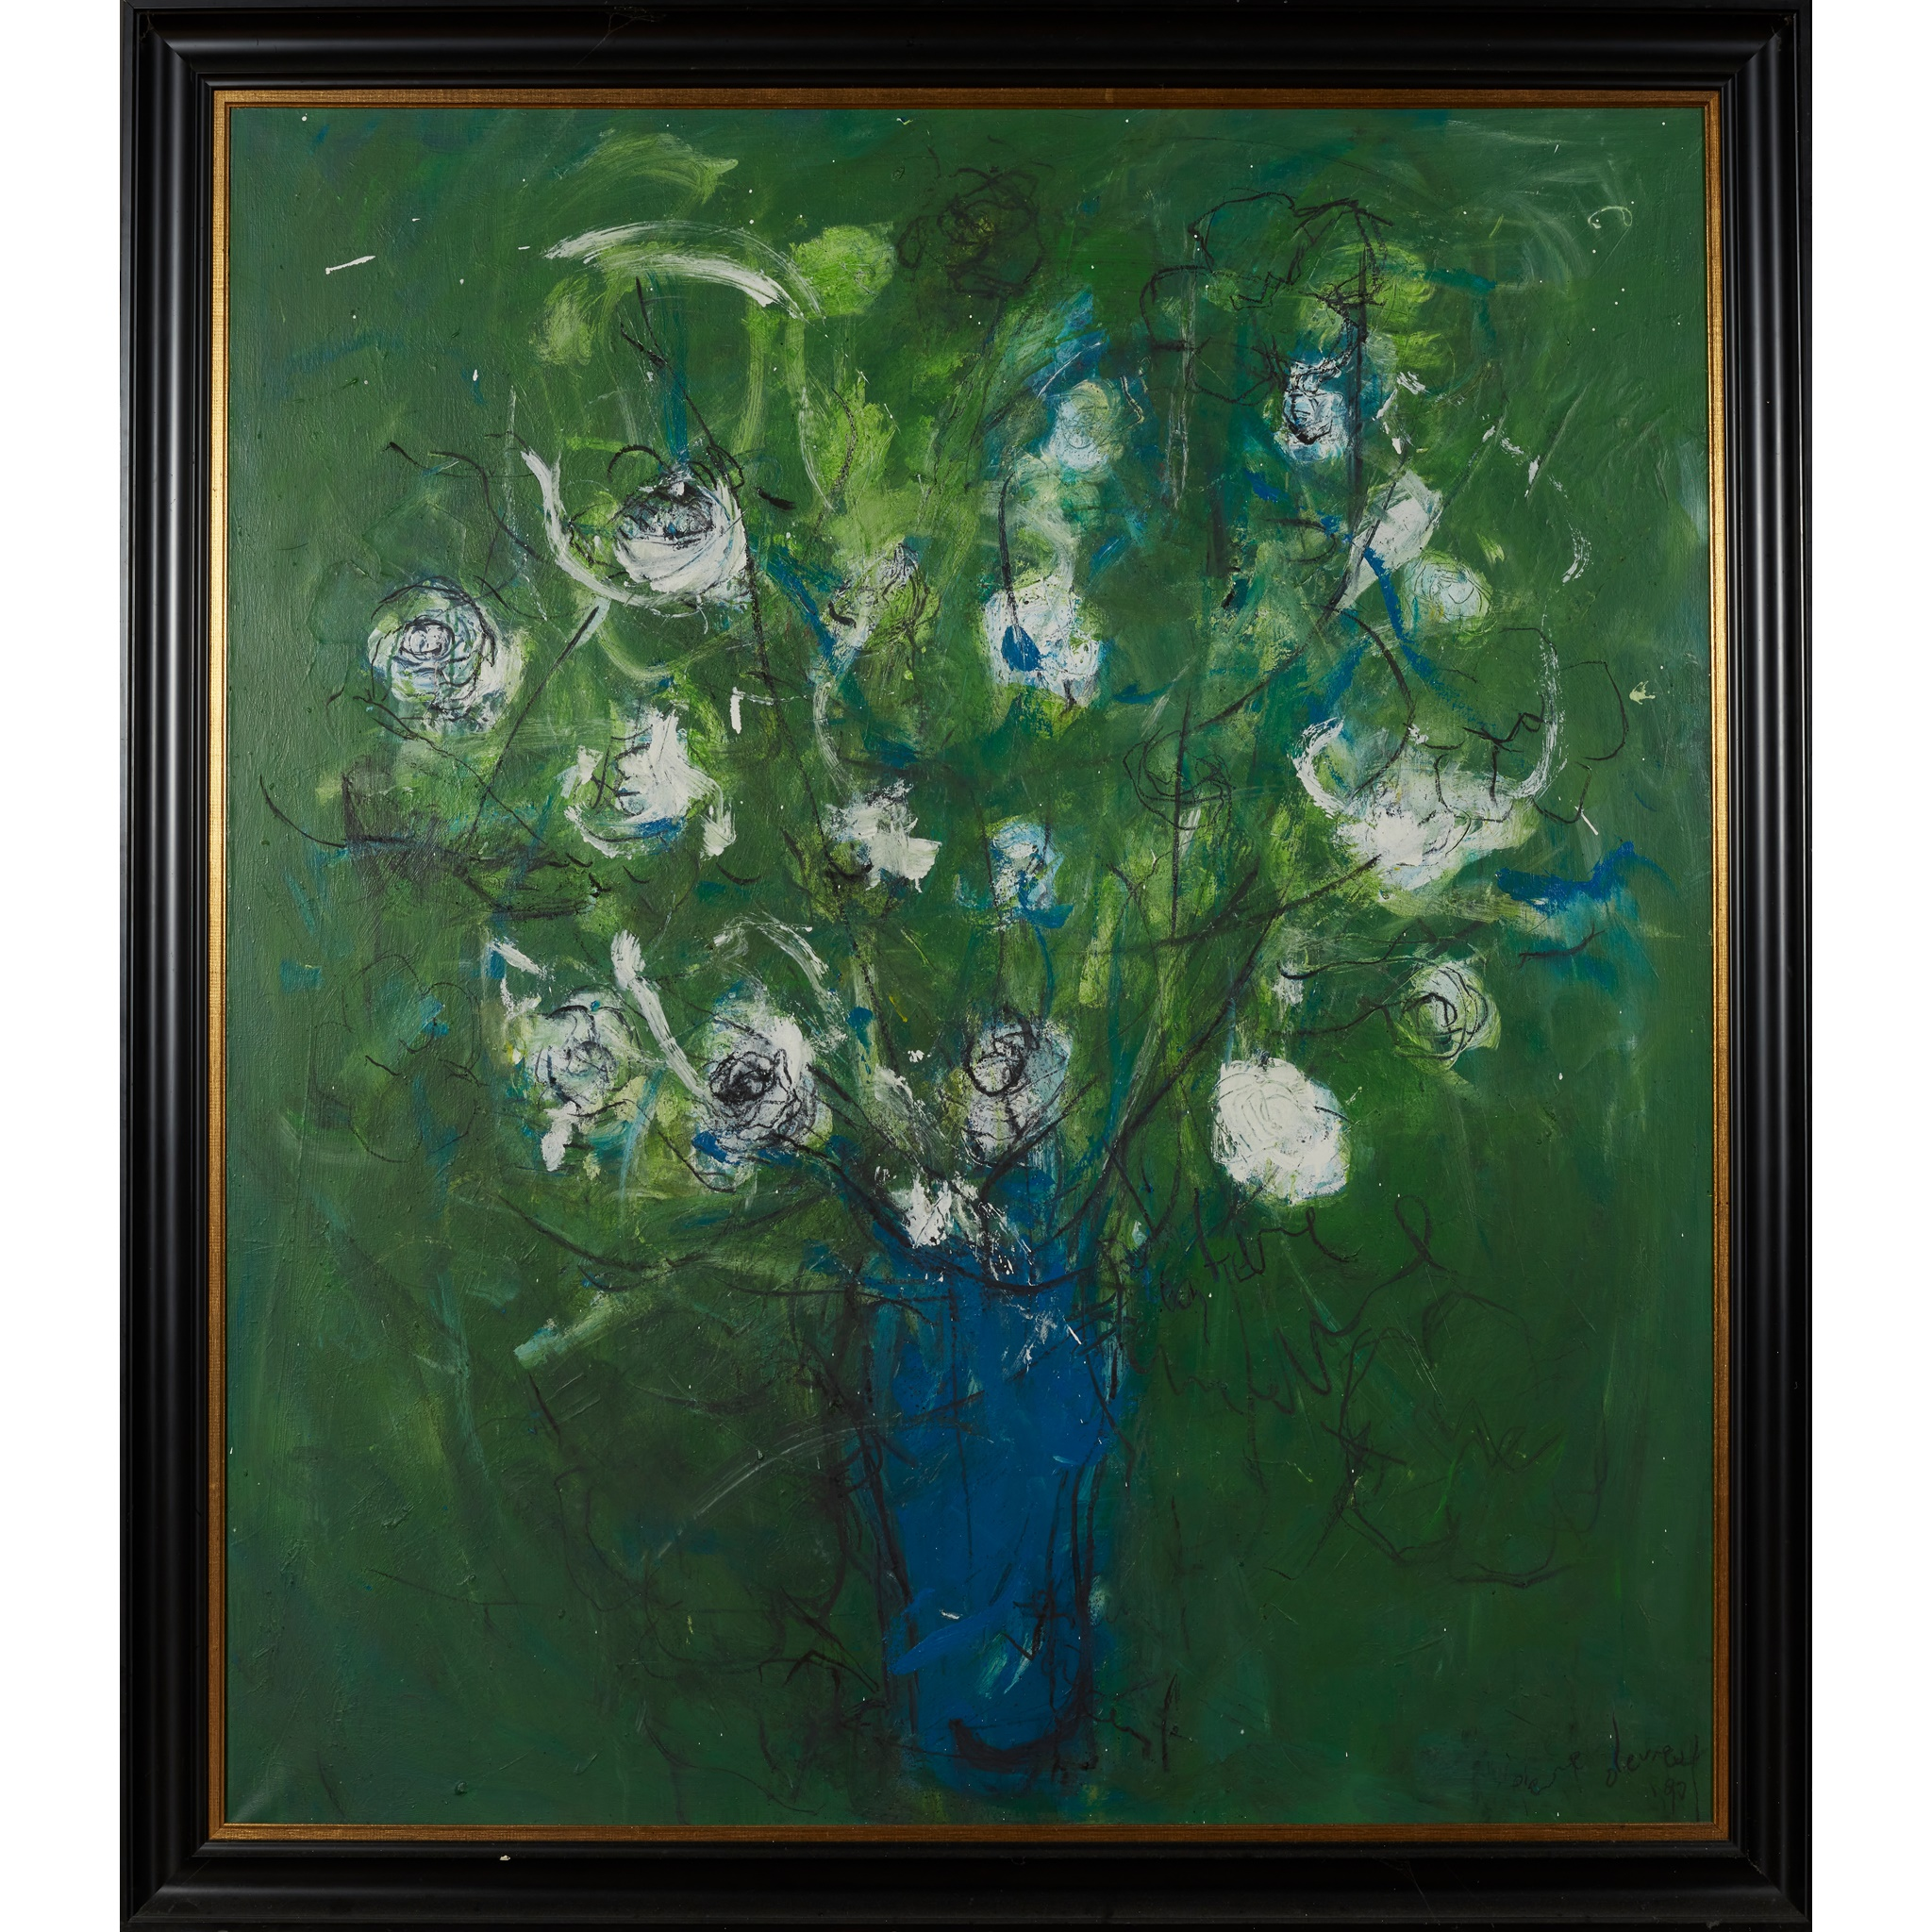 § PIERRE DEVREUX (BELGIAN 1955-) UNTITLED (STILL LIFE OF FLOWERS ON A GREEN GROUND), 1990 - Image 2 of 3